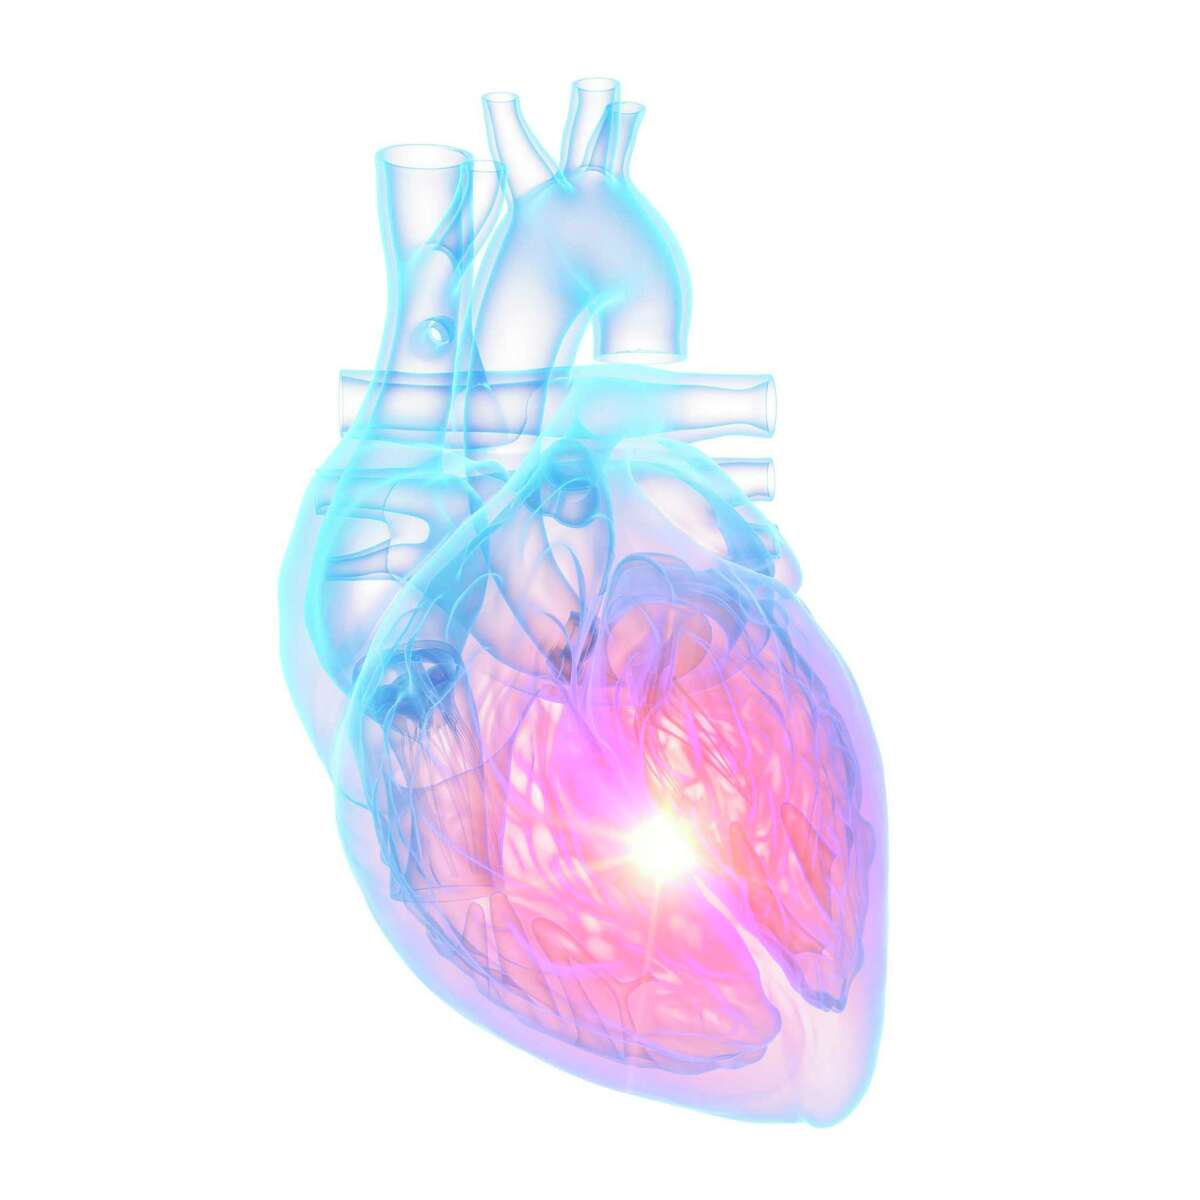 Cleveland Clinic researchers found there has been a higher incidence of a stress induced heart condition that mimics a heart attack during the pandemic.